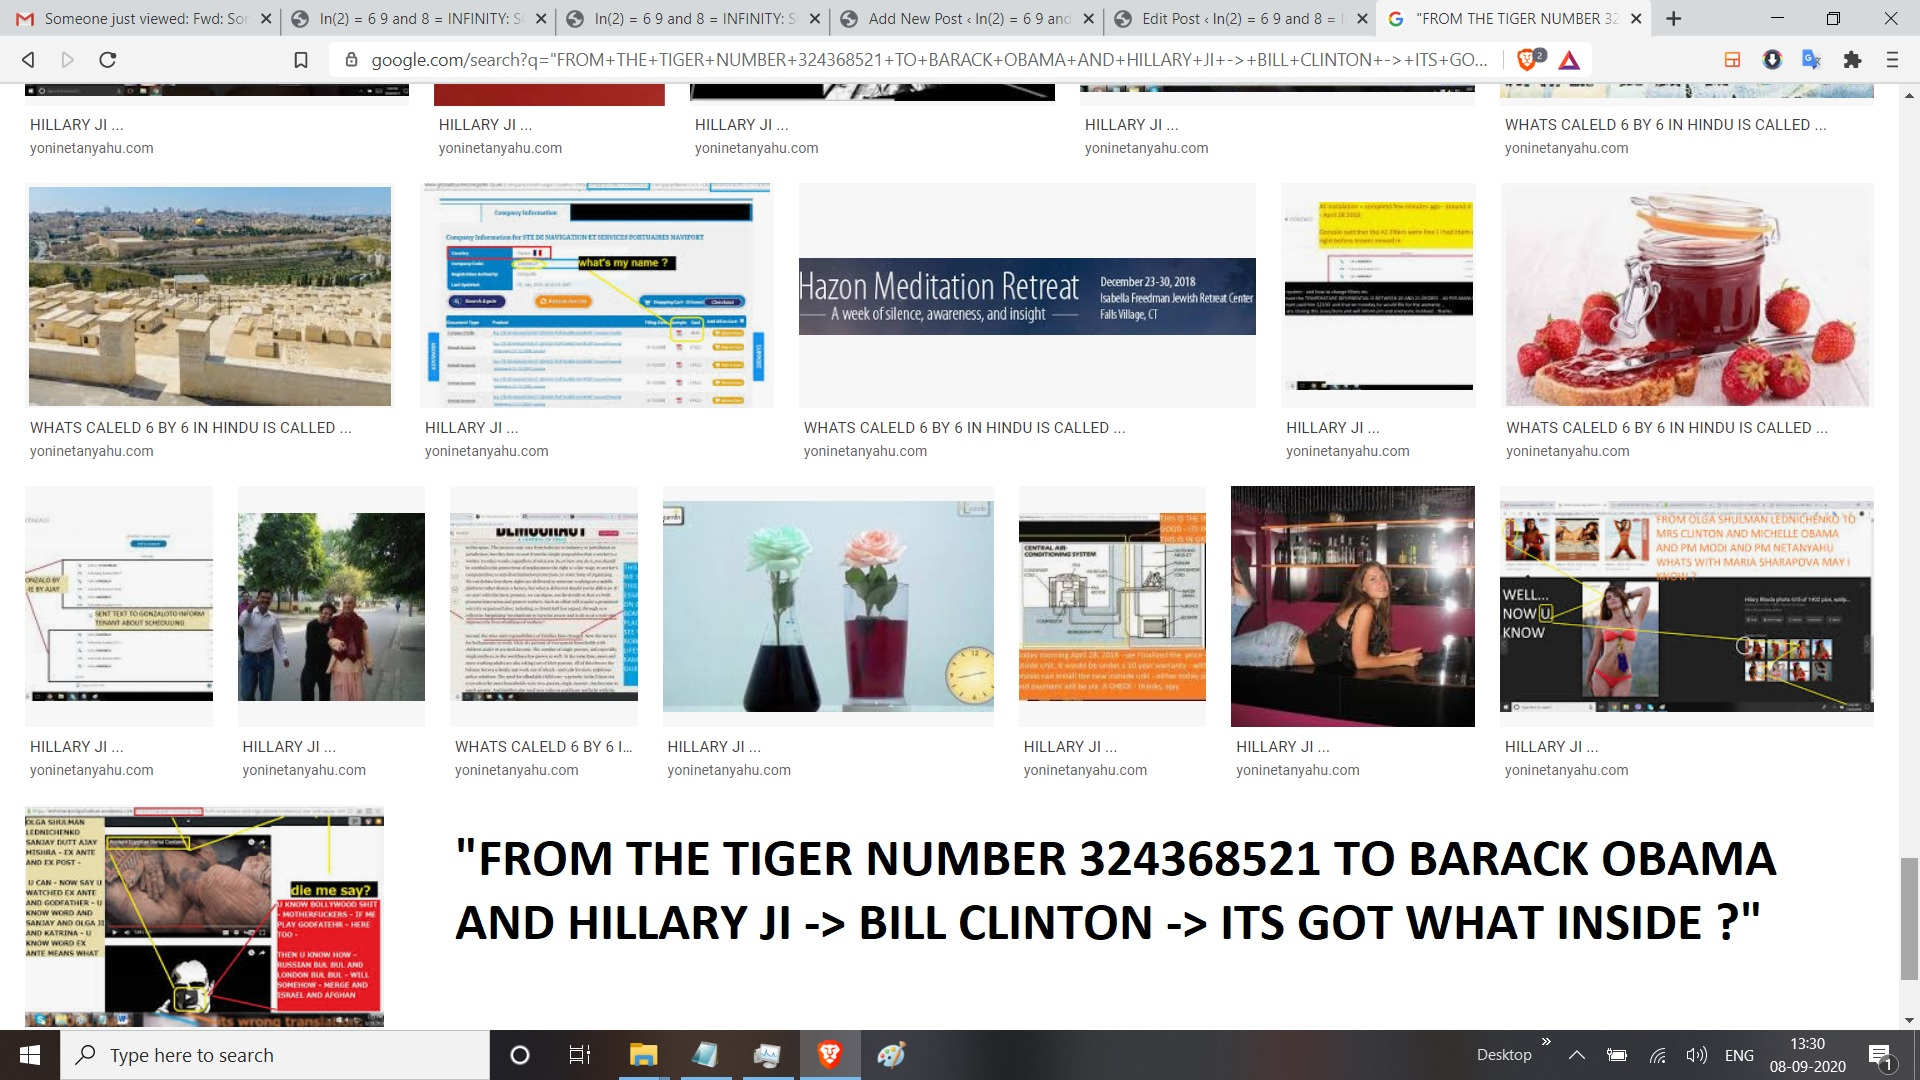 FROM THE TIGER NUMBER 324368521 TO BARACK OBAMA AND HILLARY JI BILL CLINTON ITS GOT WHAT INSIDE